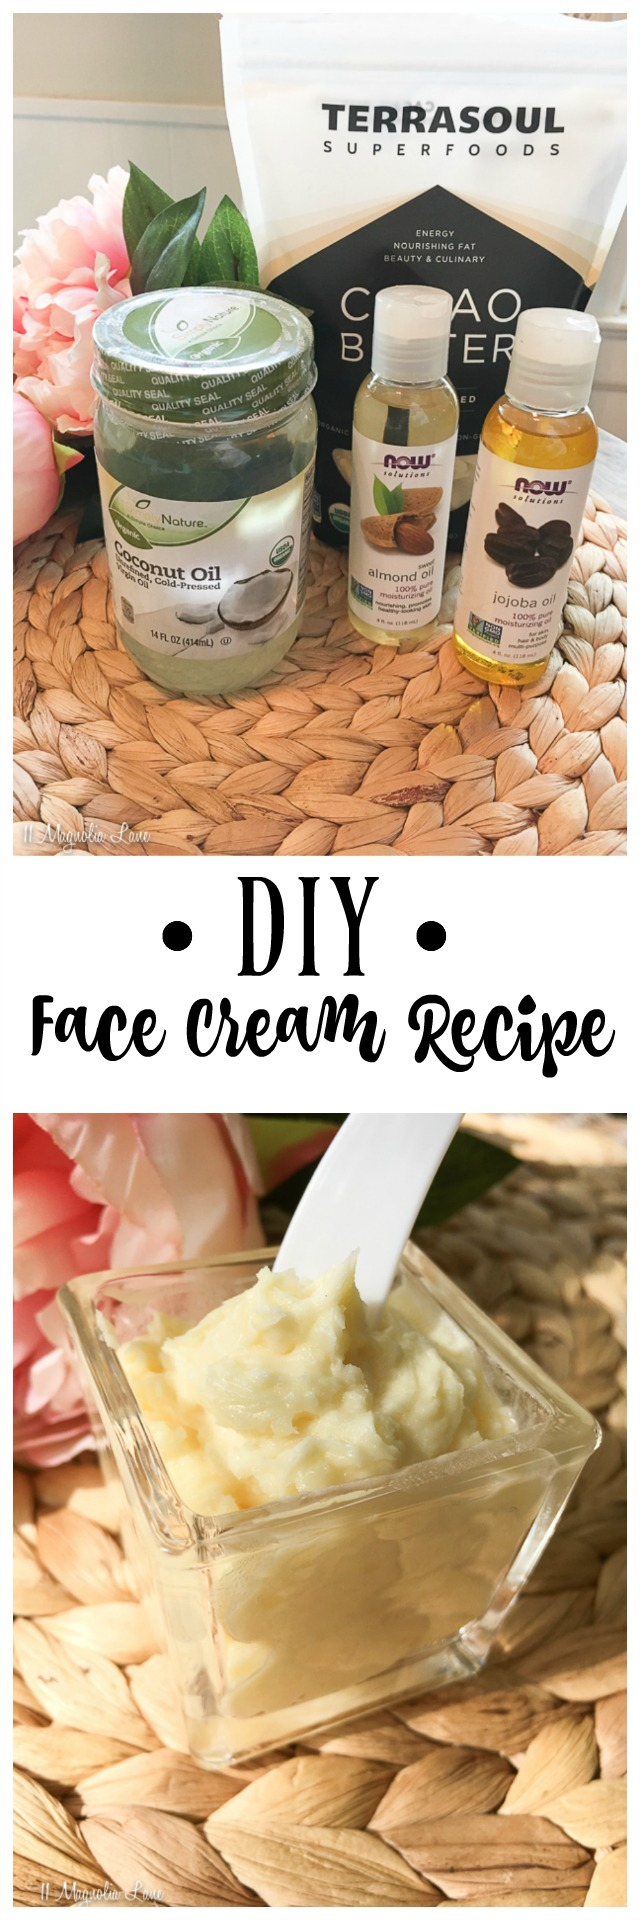 DIY organic face cream recipe with essential oils | 11 Magnolia Lane